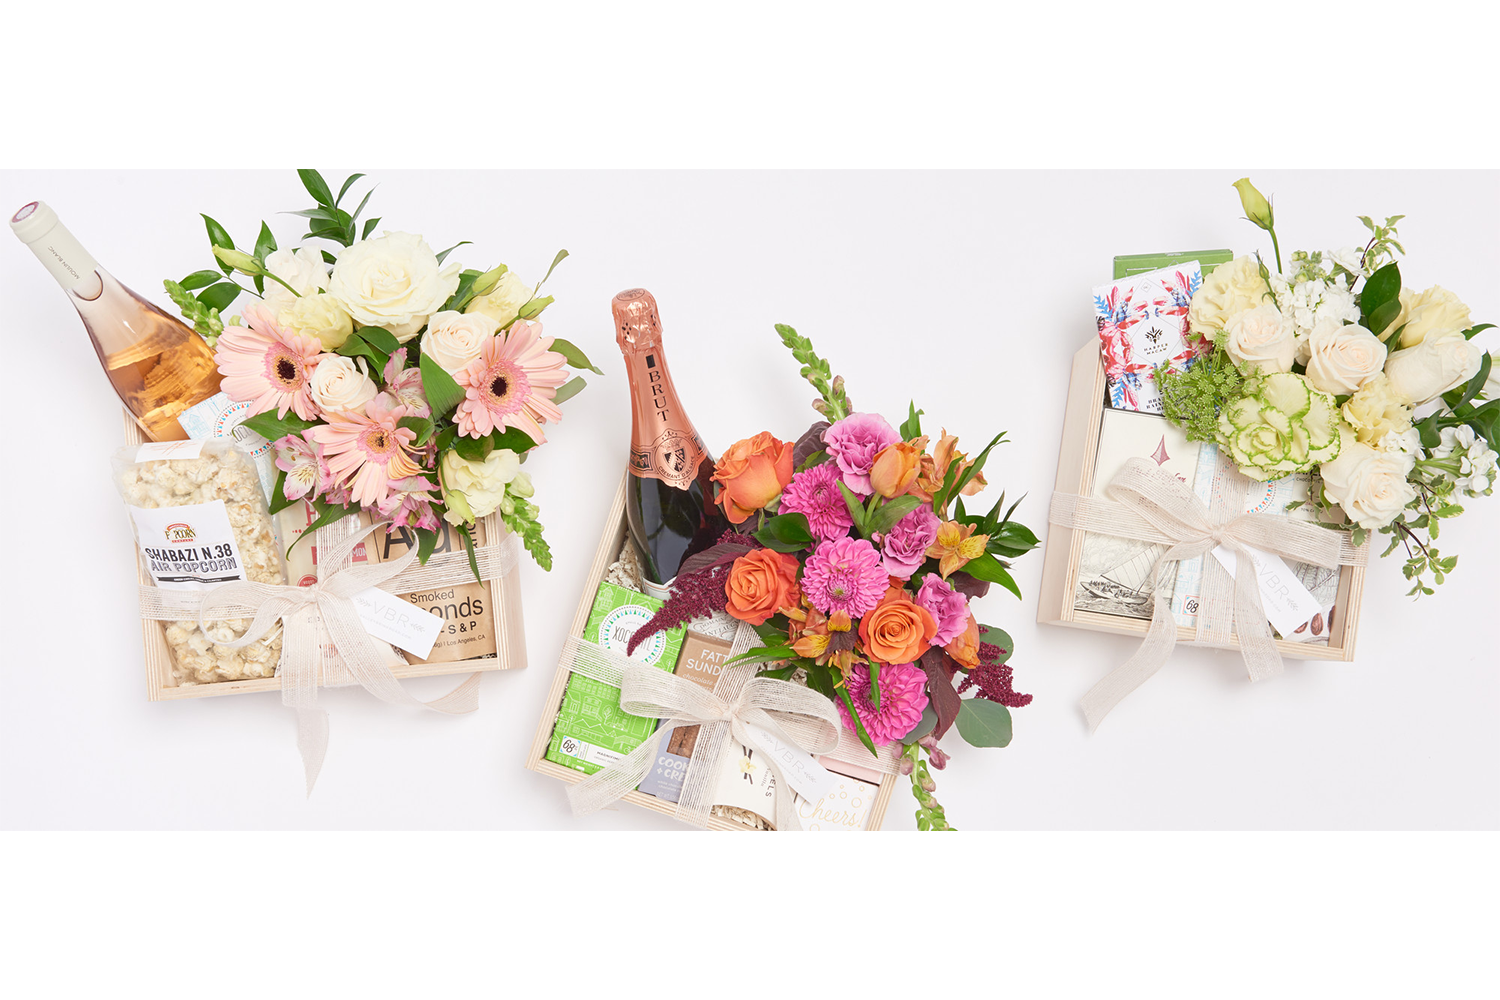 Beautiful gifts for new moms and beyond - Valleybrink Road is a floral design and luxury gifting company based in Los Angeles, CA. The vision of Barrett Prendergast, a florist, gifter and lifestyle curator, Valleybrink Road is a natural extension of her love of entertaining and her passion for creating the perfect gift.